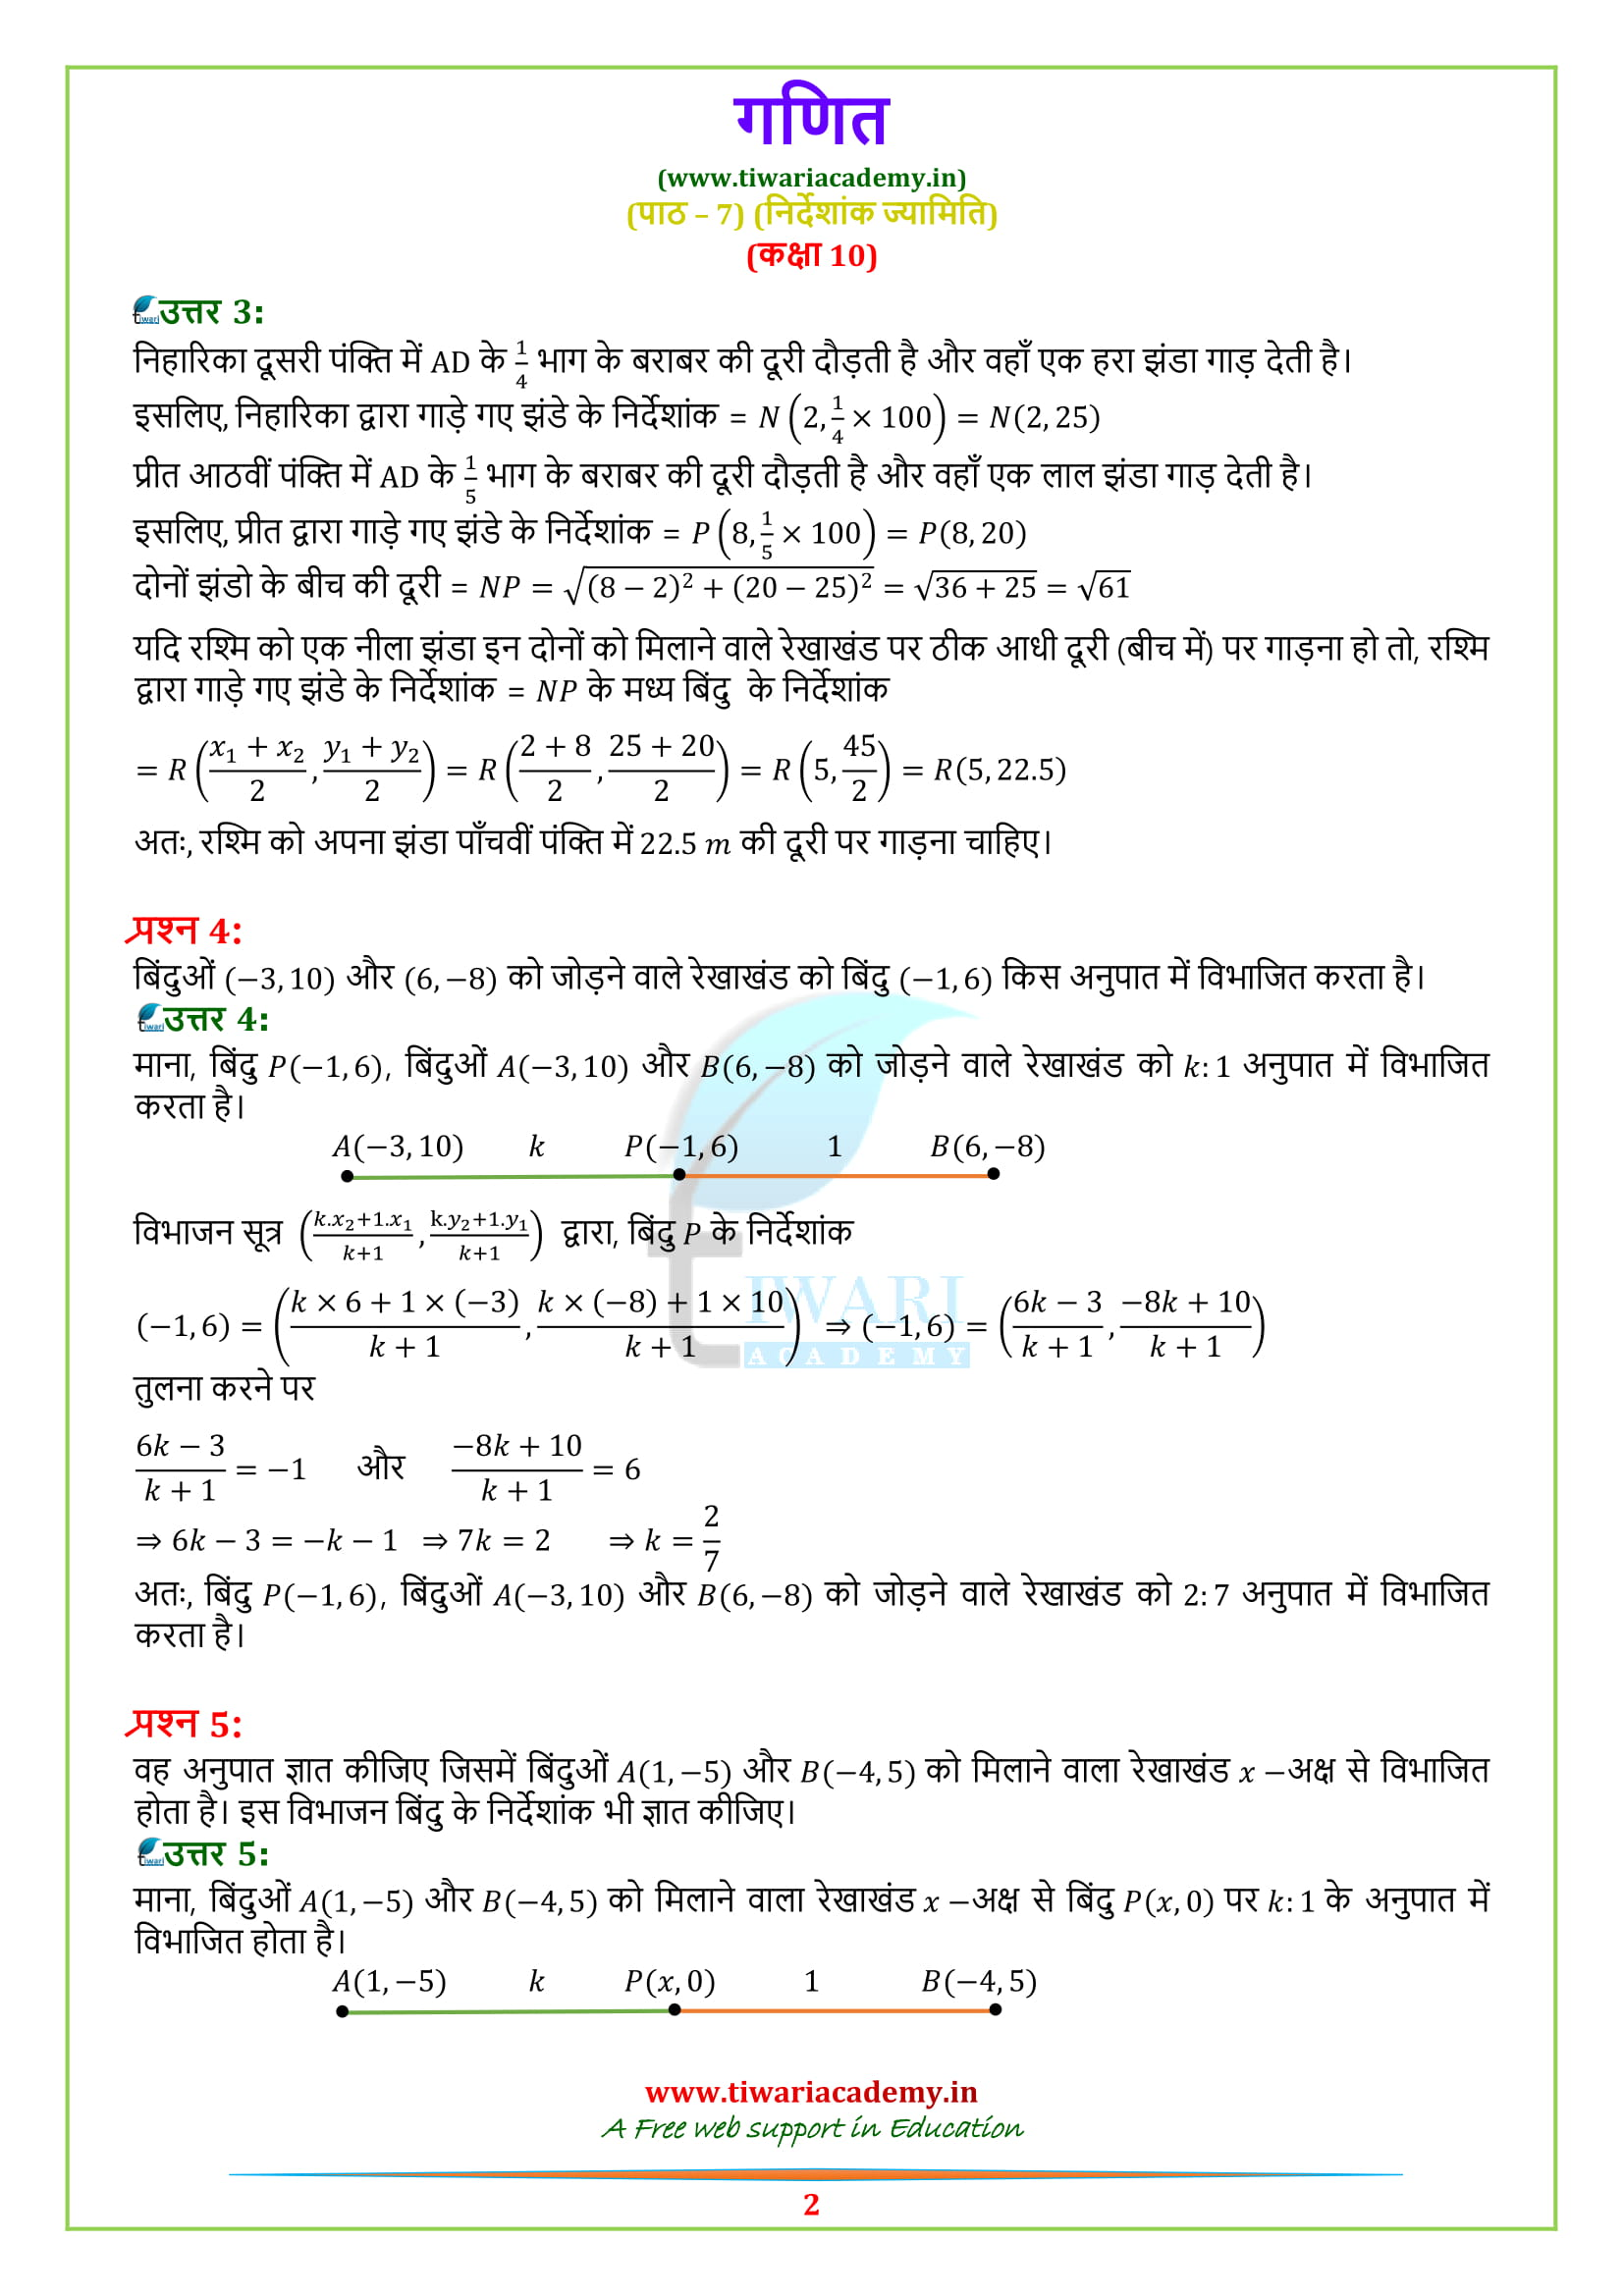 Class 10 Maths Exercise 7.2 Soluitons of all question answers